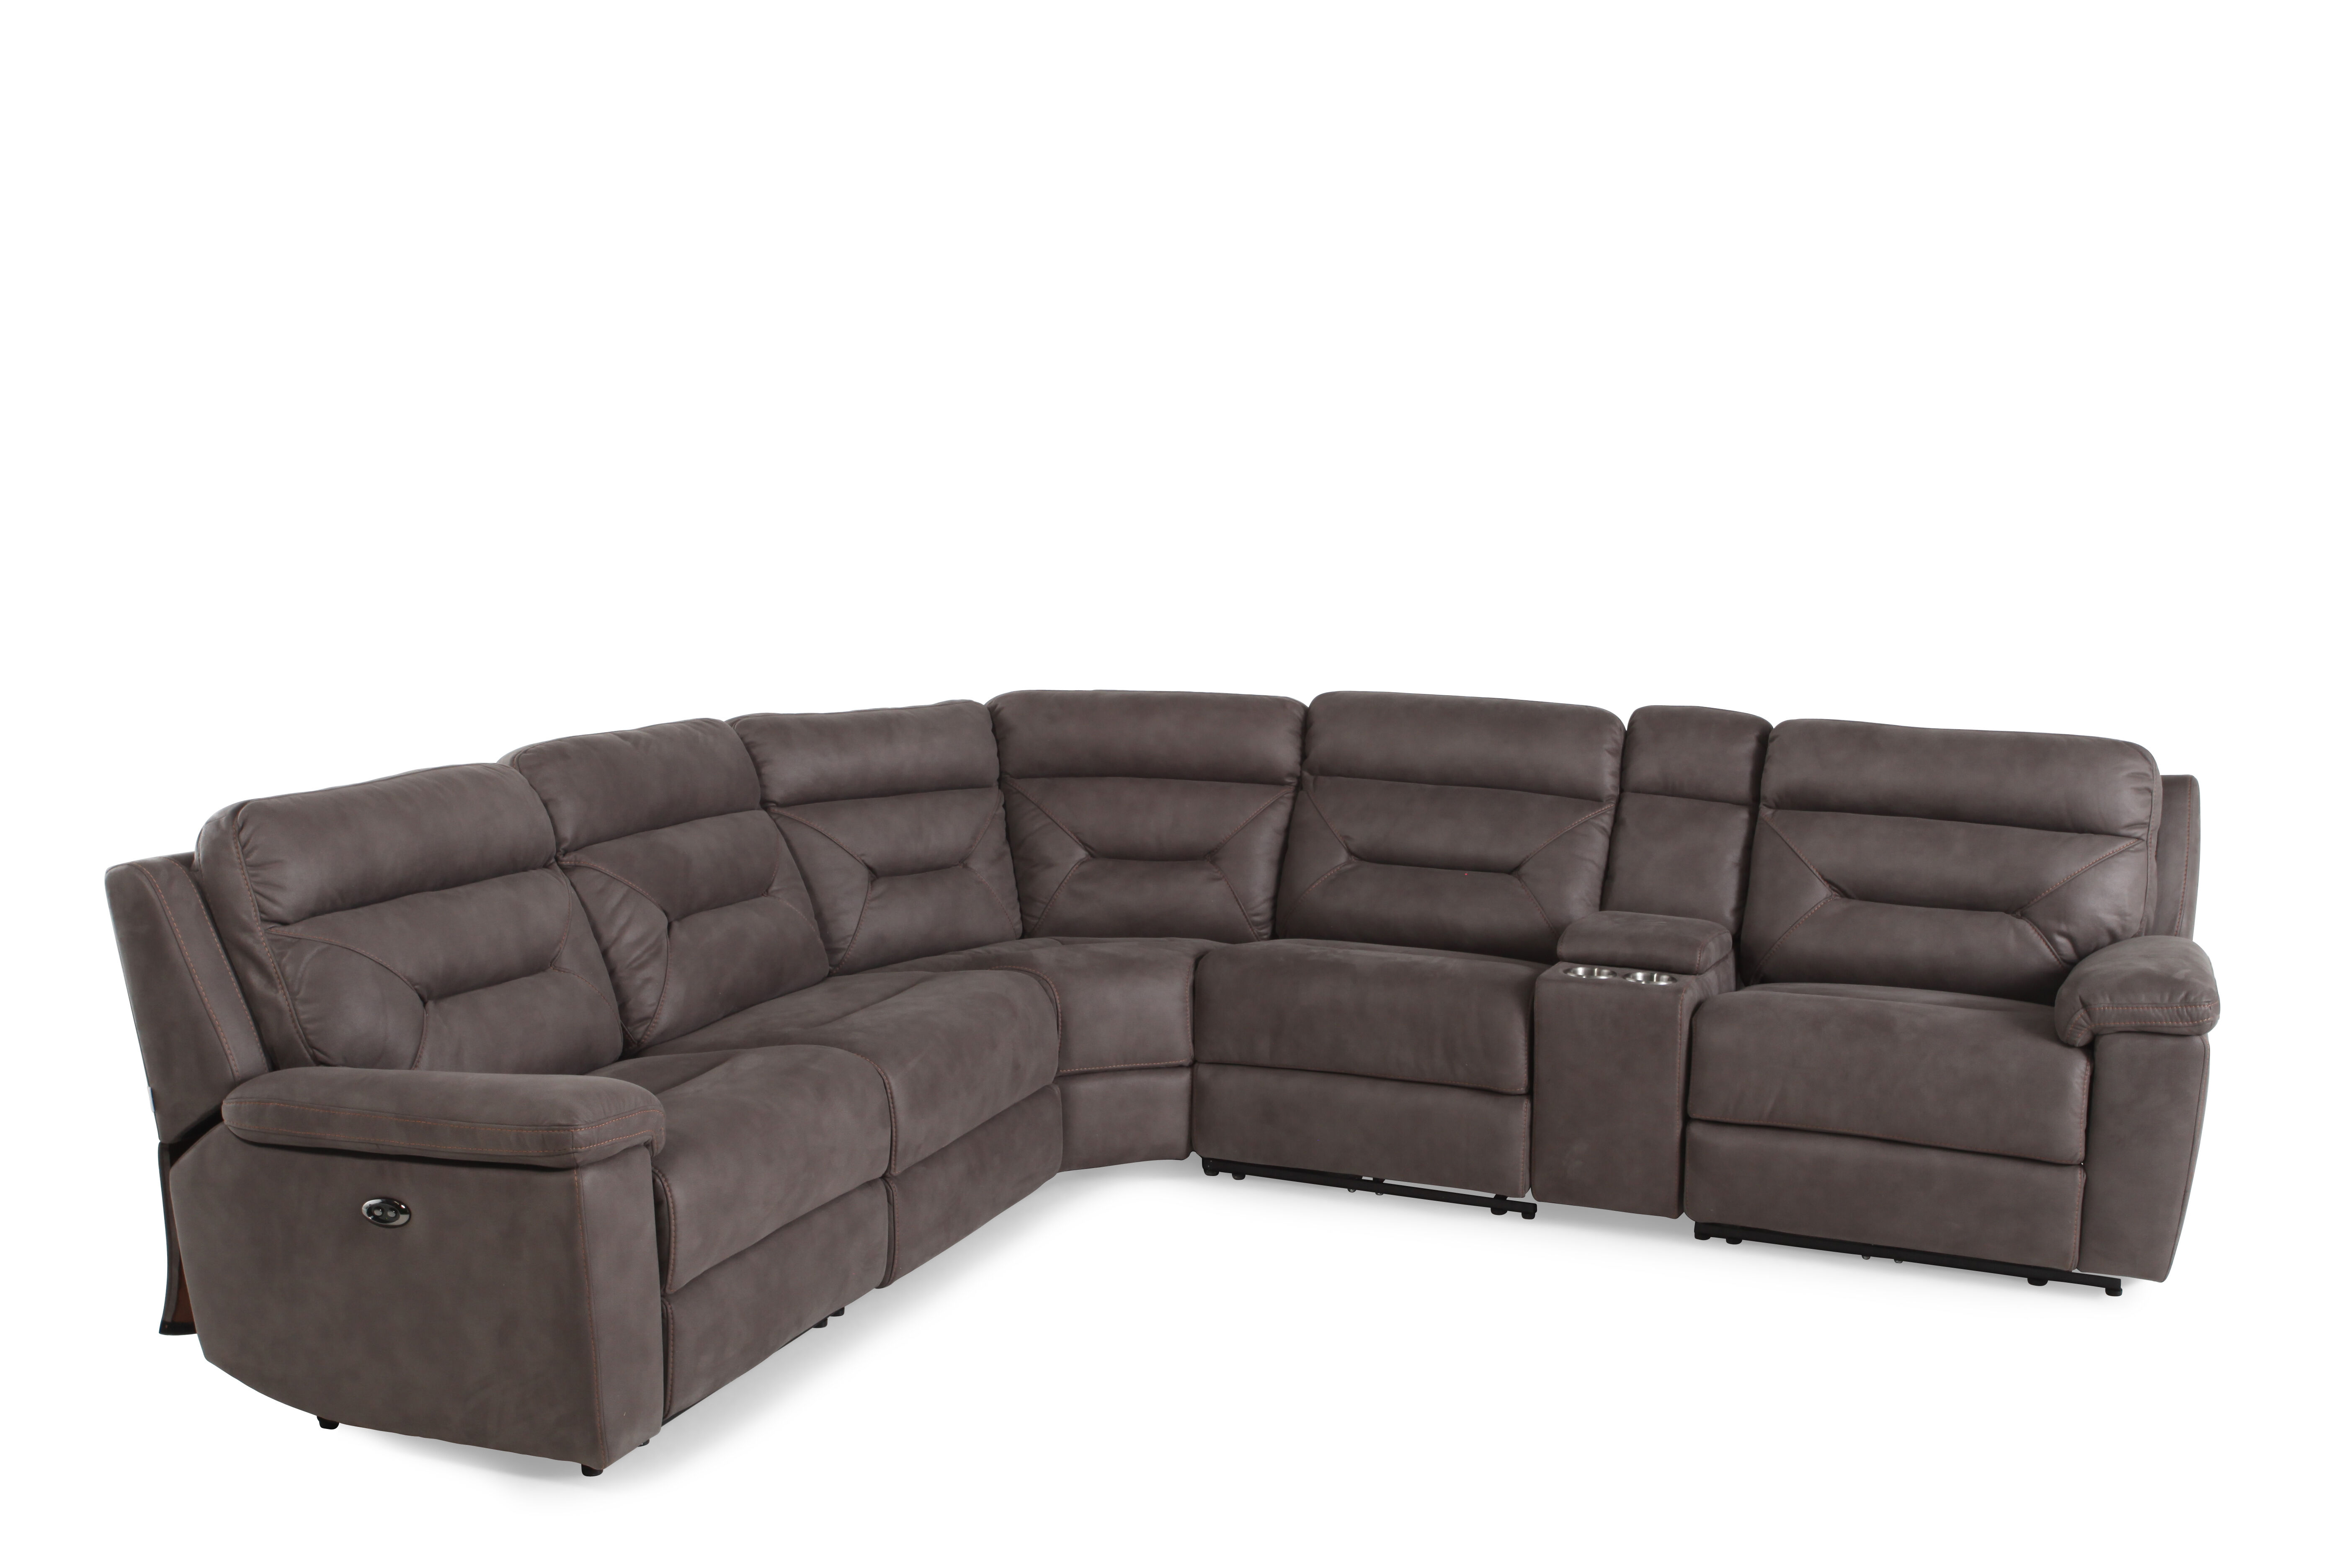 SixPiece Microfiber 168 Power Reclining Sectional in Gray Mathis